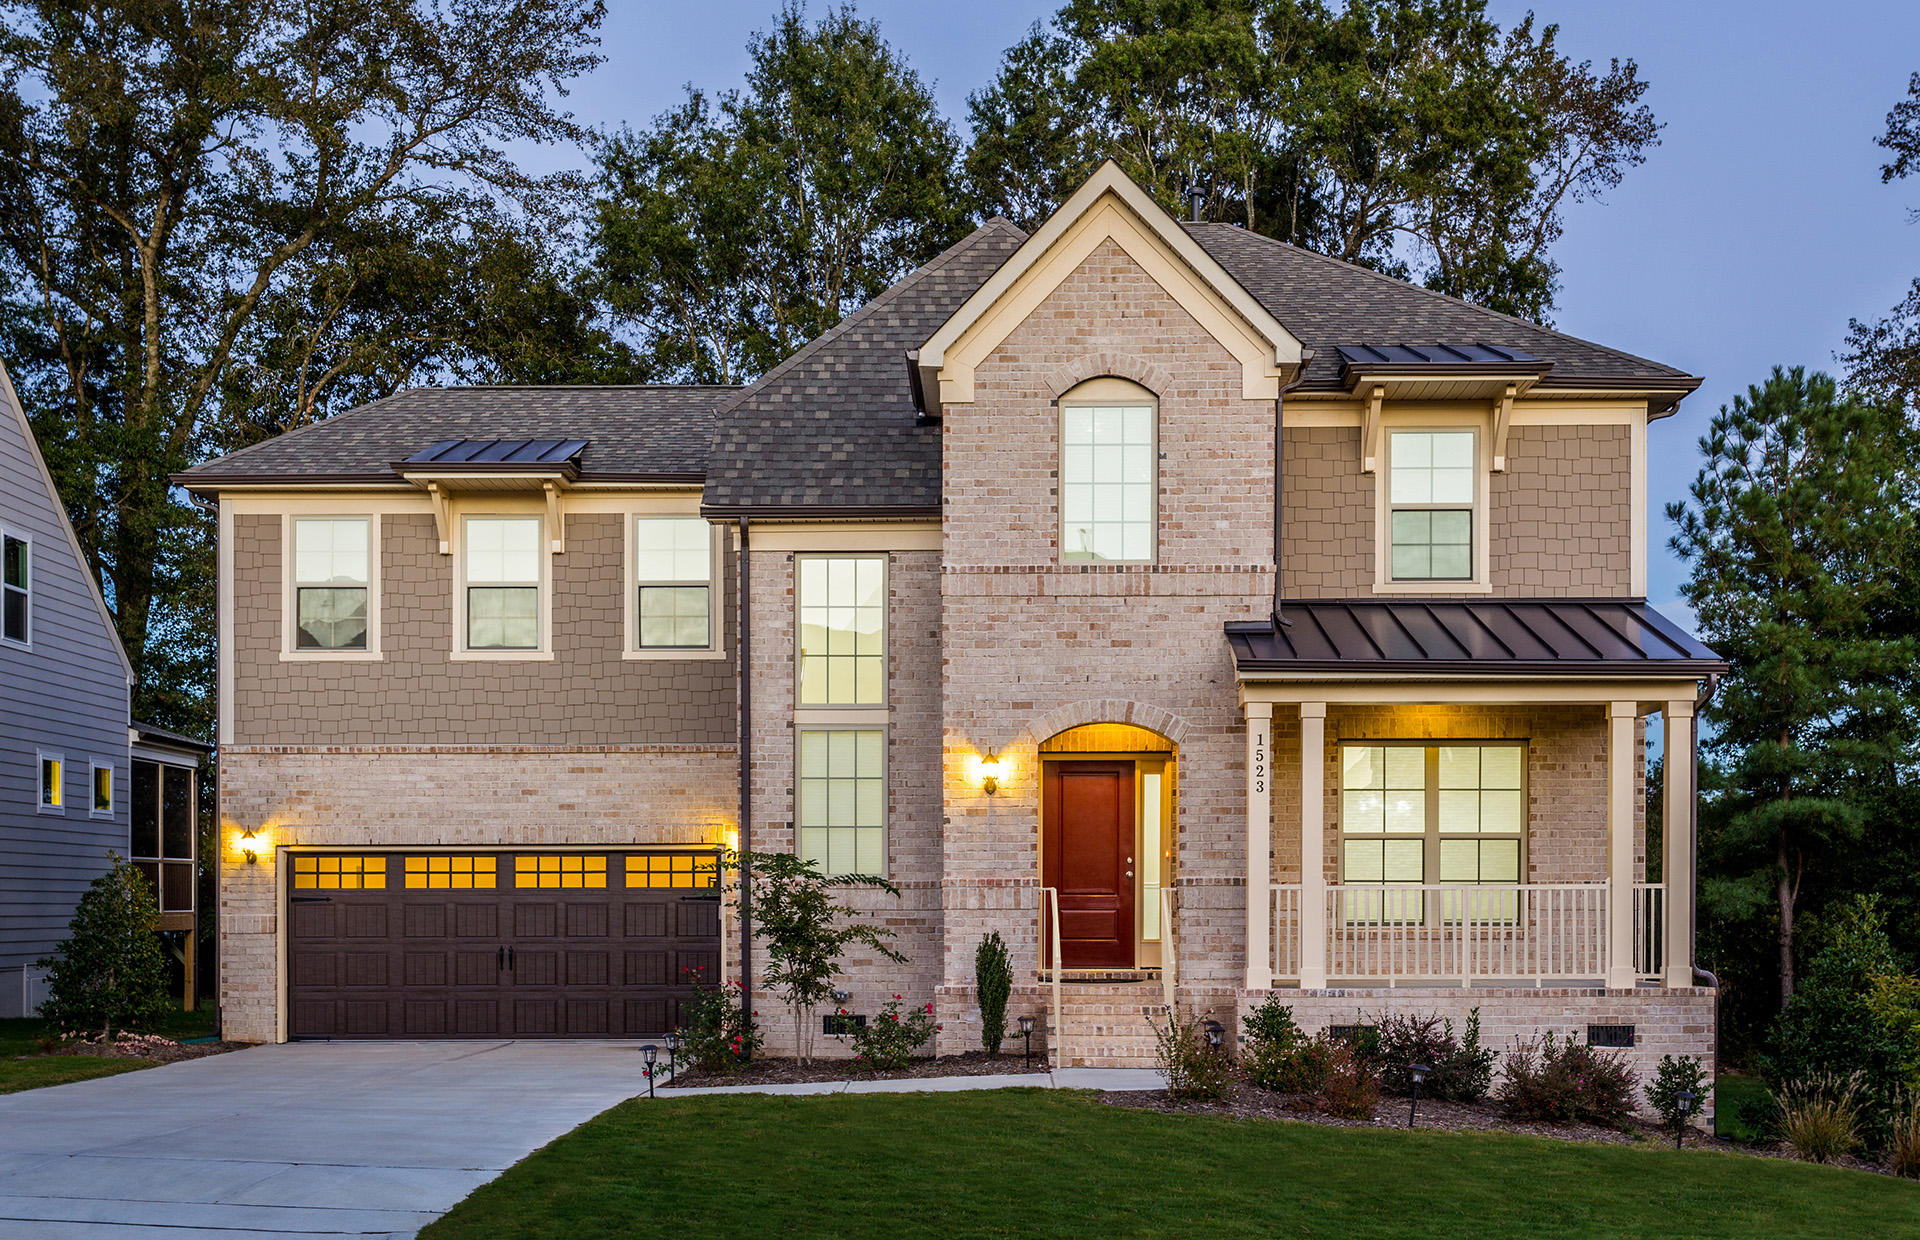 Greenmoor by Pulte Homes image 0